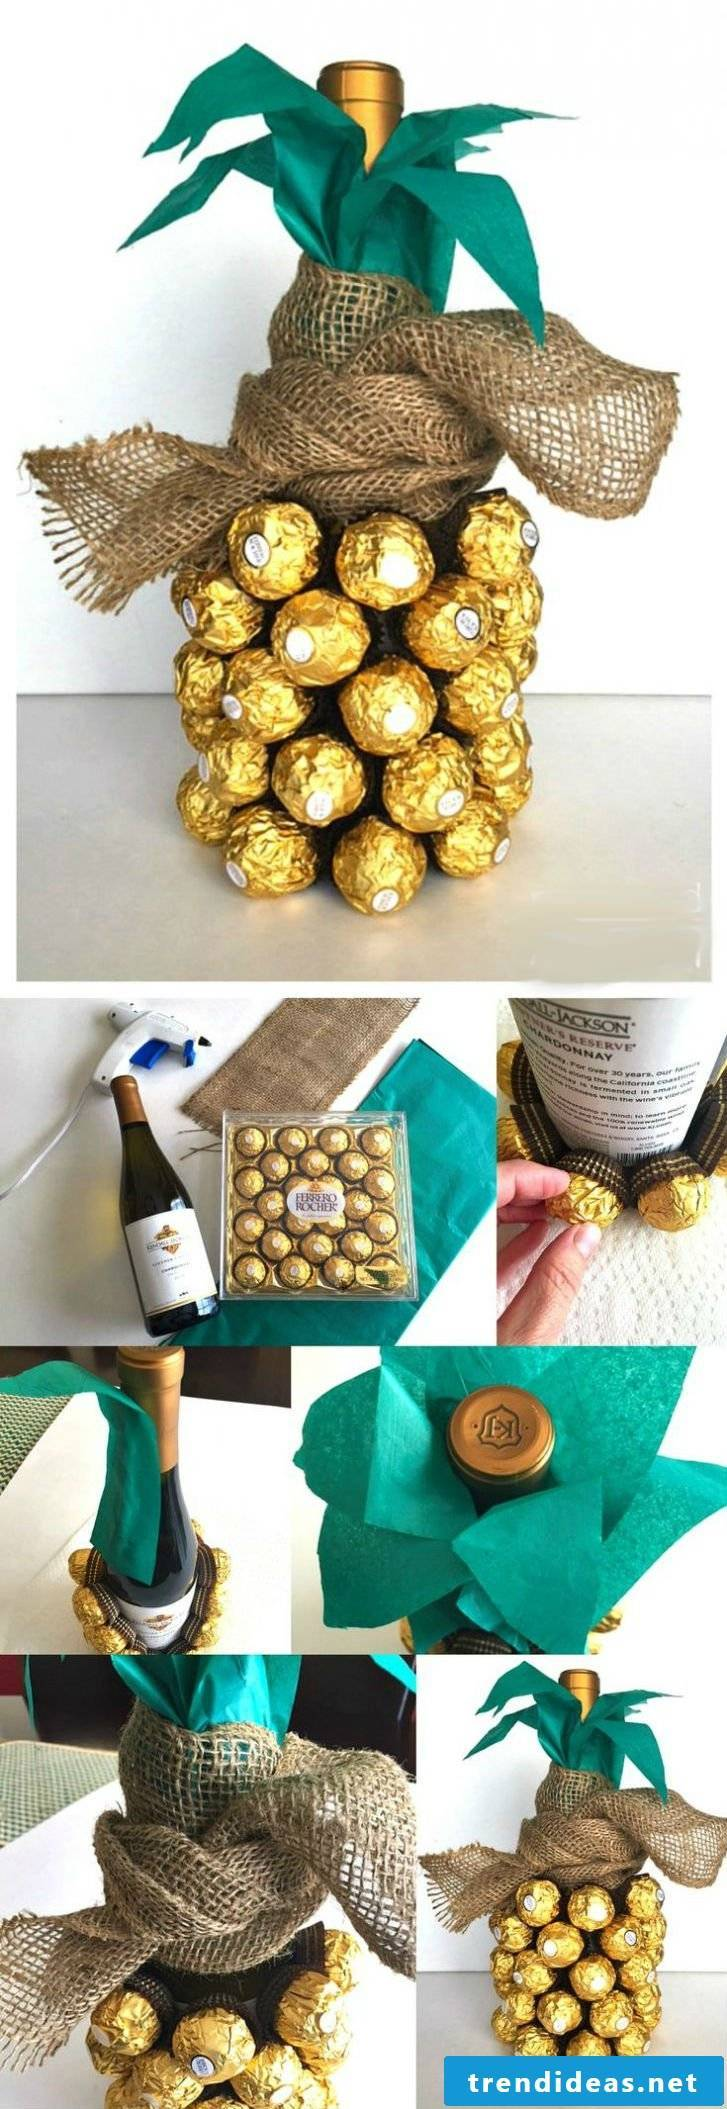 DIY instructions for homemade gifts for parents